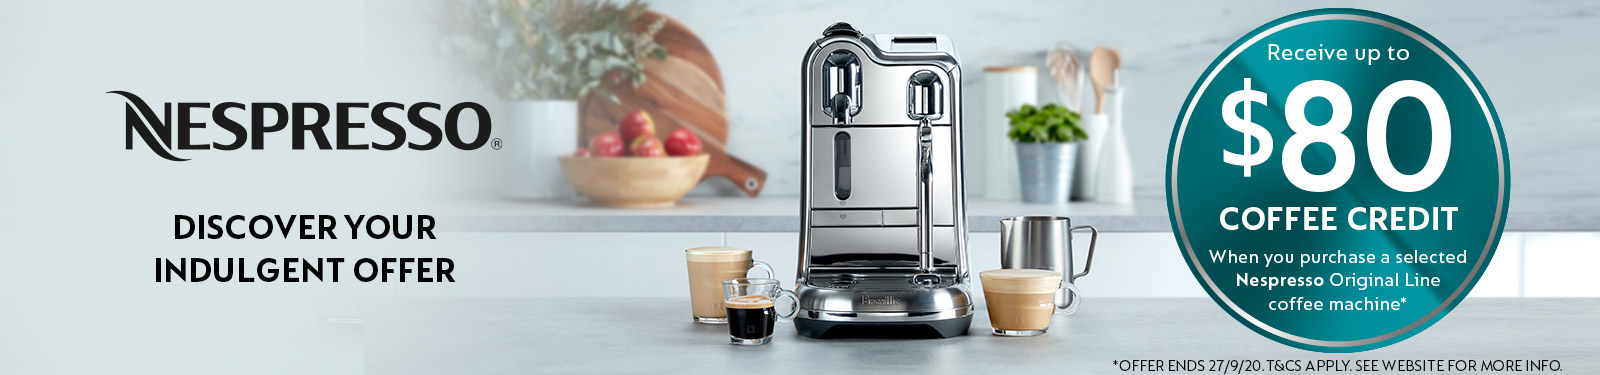 Delonghi Up To $80 Coffee Credit